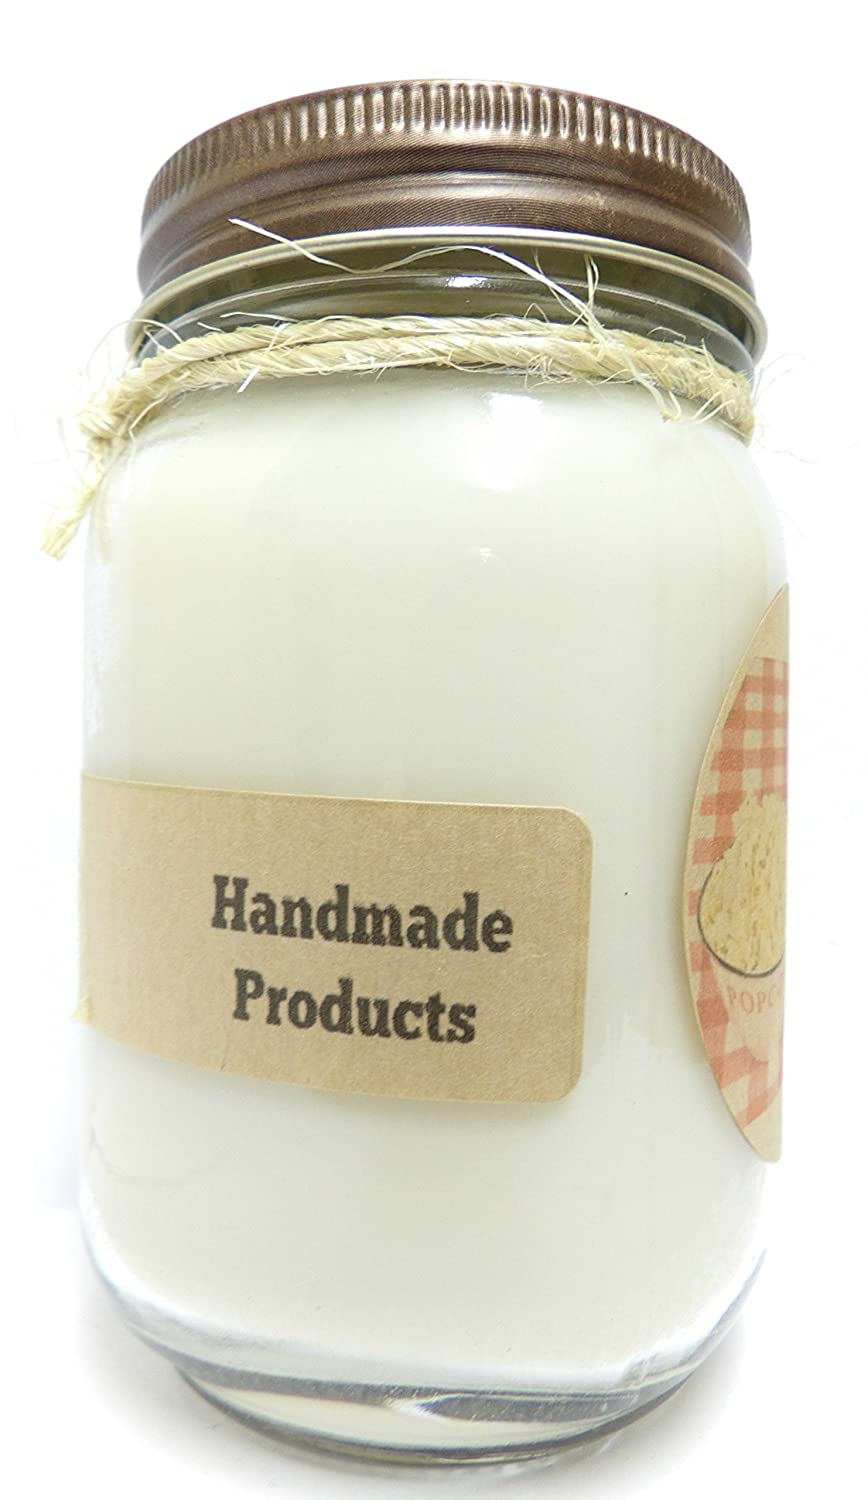 Amazon.com: Hot Buttered Popcorn 16oz Country Jar Soy Candle - Handmade in Rolla Missouri: Home & Kitchen